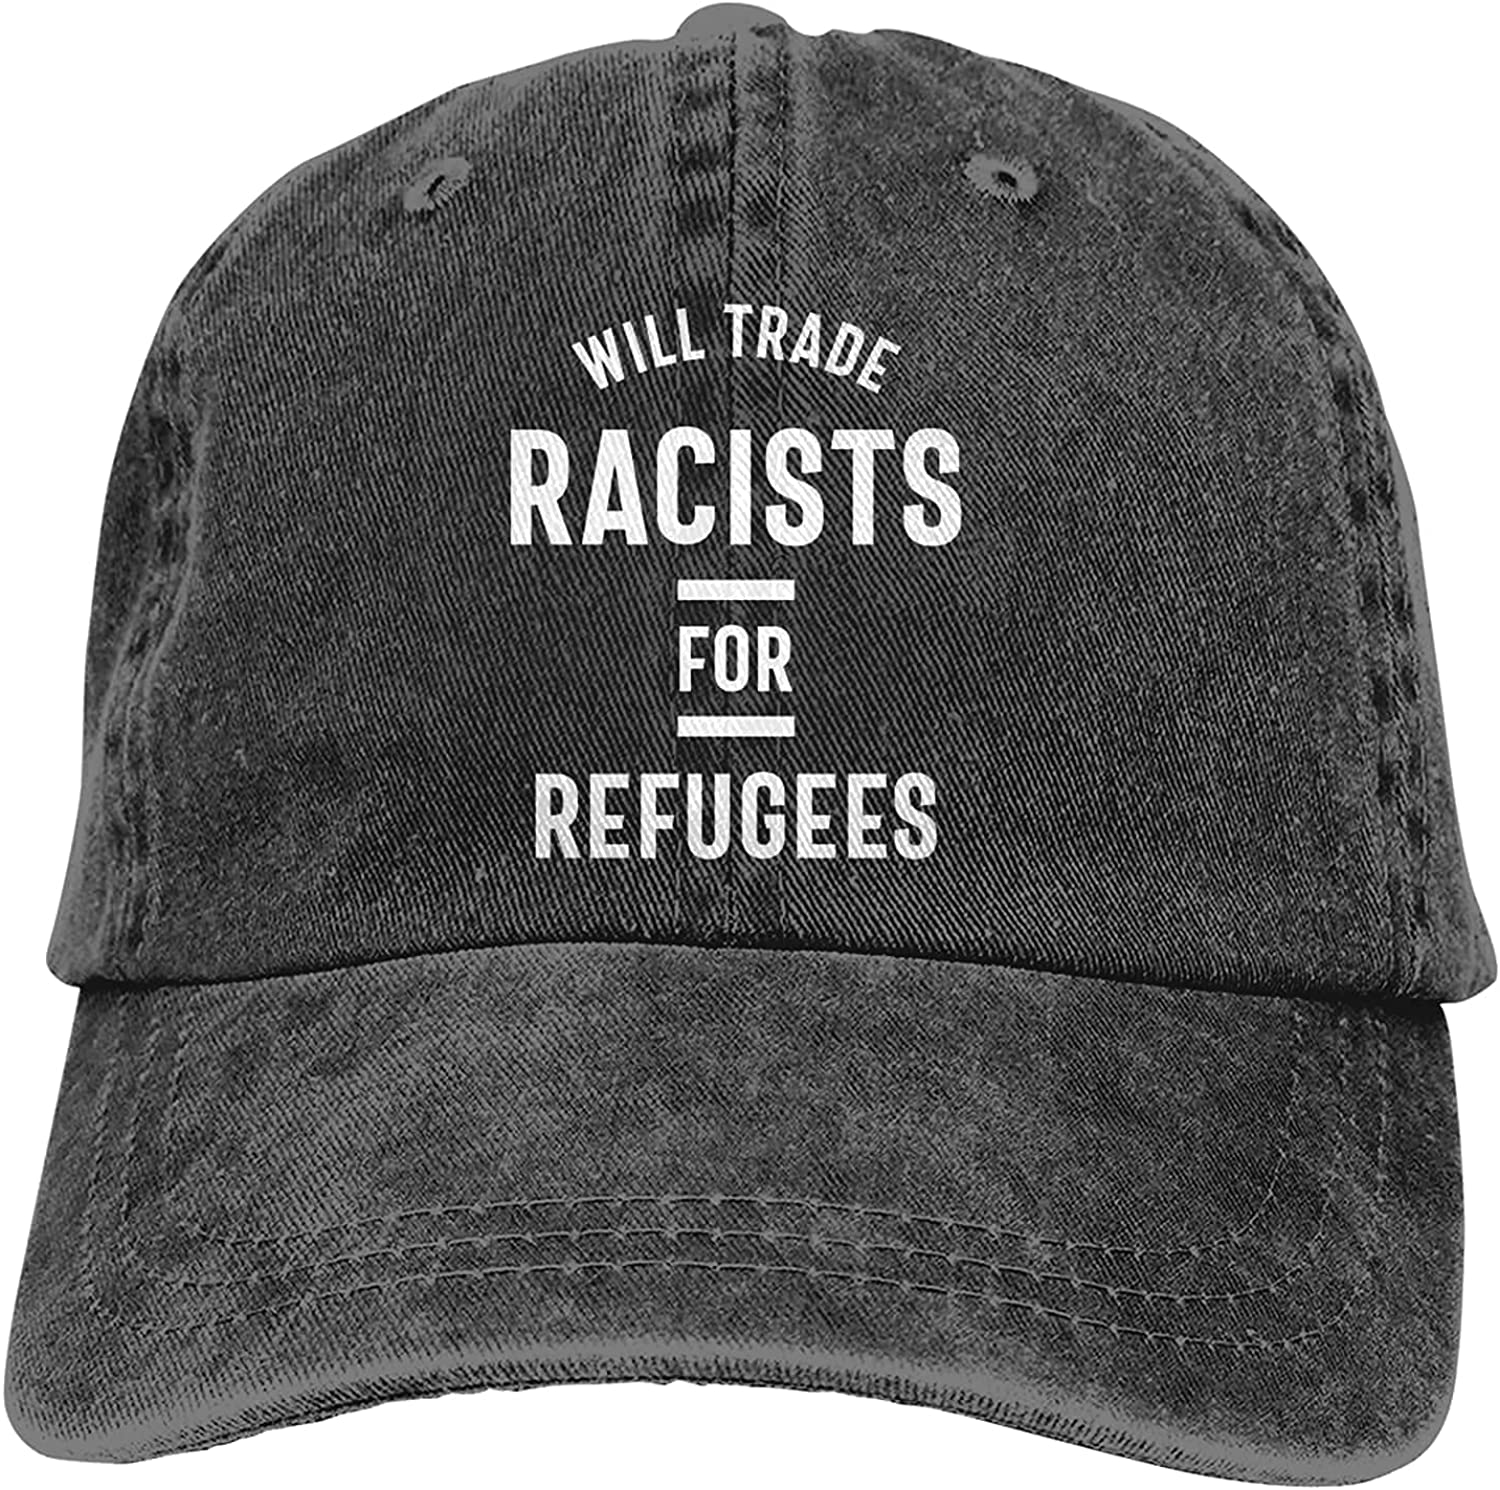 BGWORZD Will Trade Racists for Refugees Adjustable Washed Dad Hat Cowboy Cap Denim Cap Baseball Cap